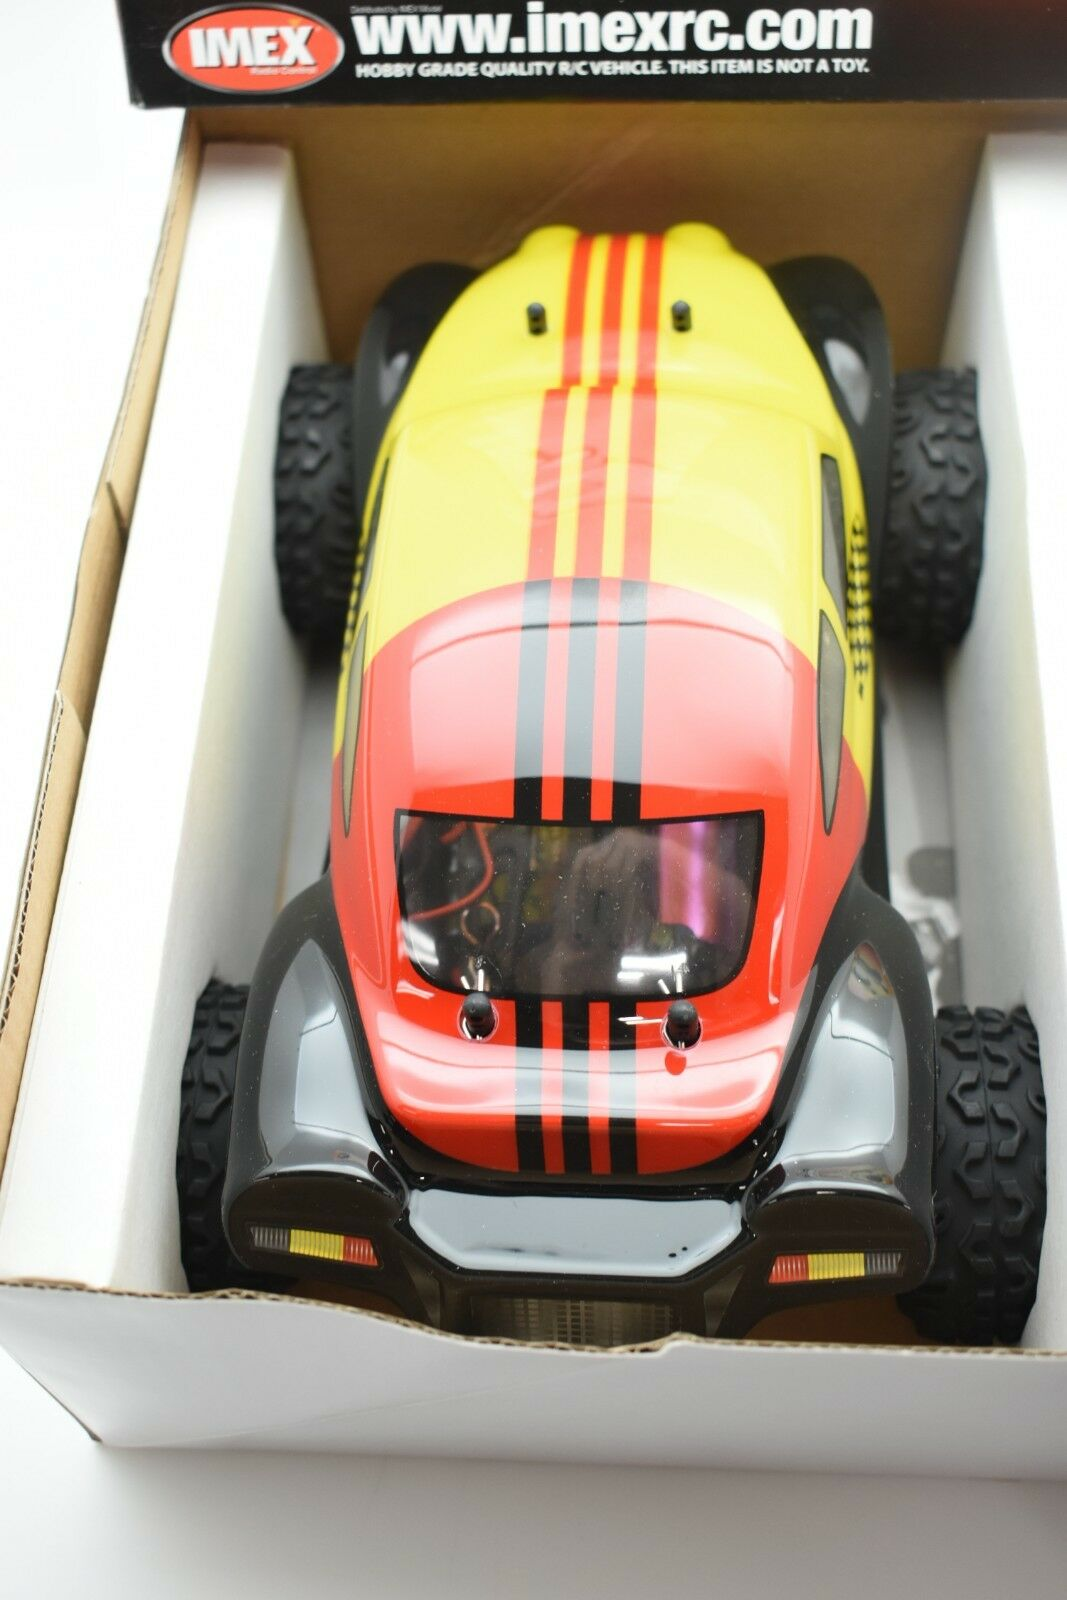 VRX18842-BT COLOR-YELLOW DART MT MT MT BRUSHLESS 1 18 SCALE 4WD ELECTRIC VEHICLE (REB) 227cc2